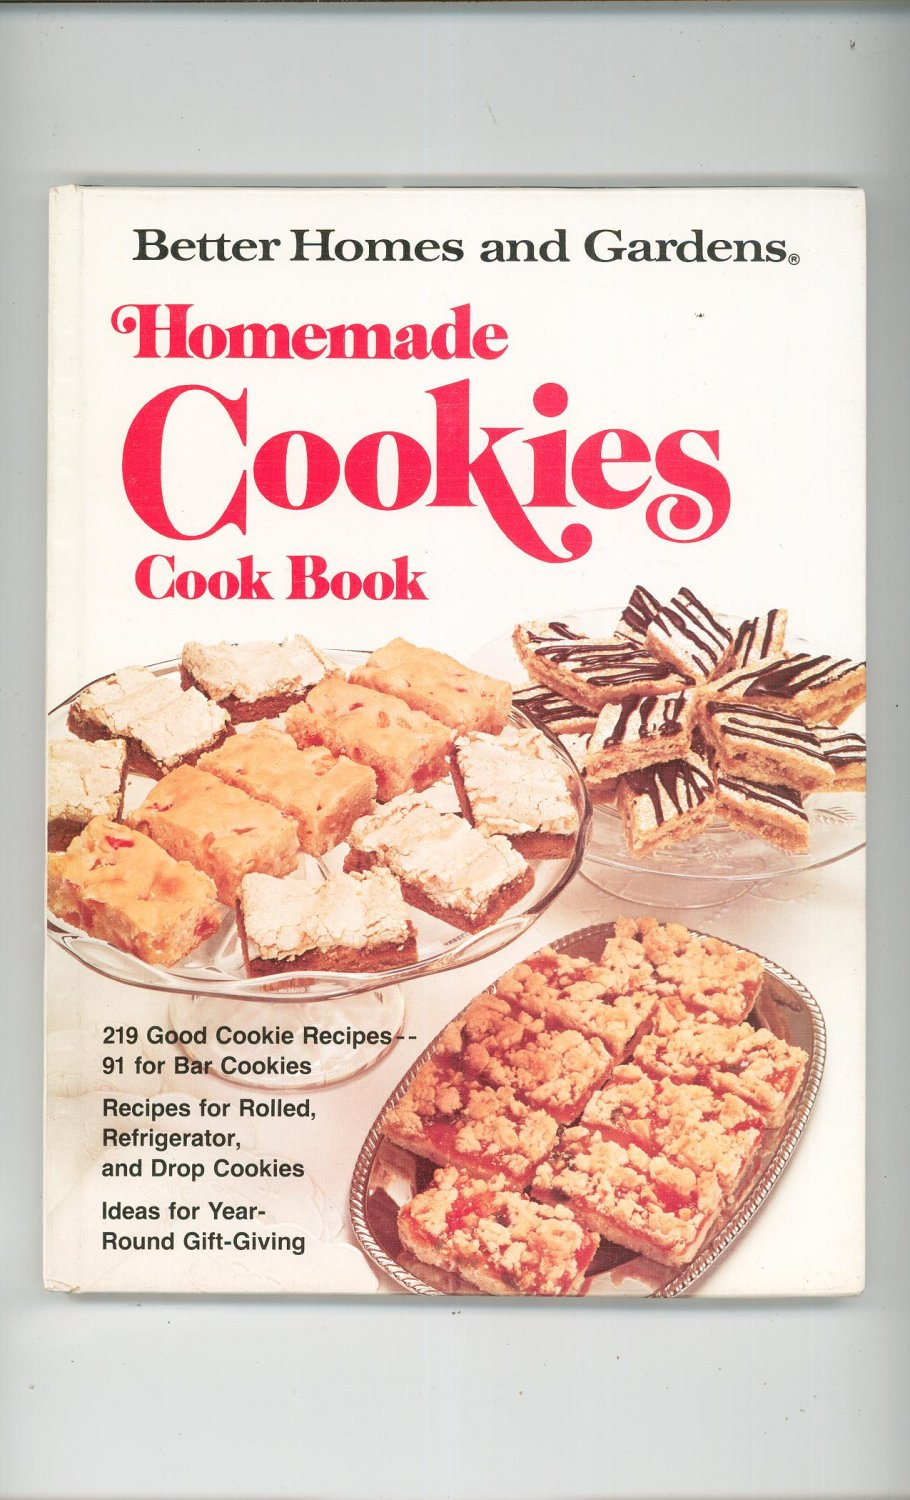 Homemade Cookies Cookbook By Better Homes And Gardens 0696007800